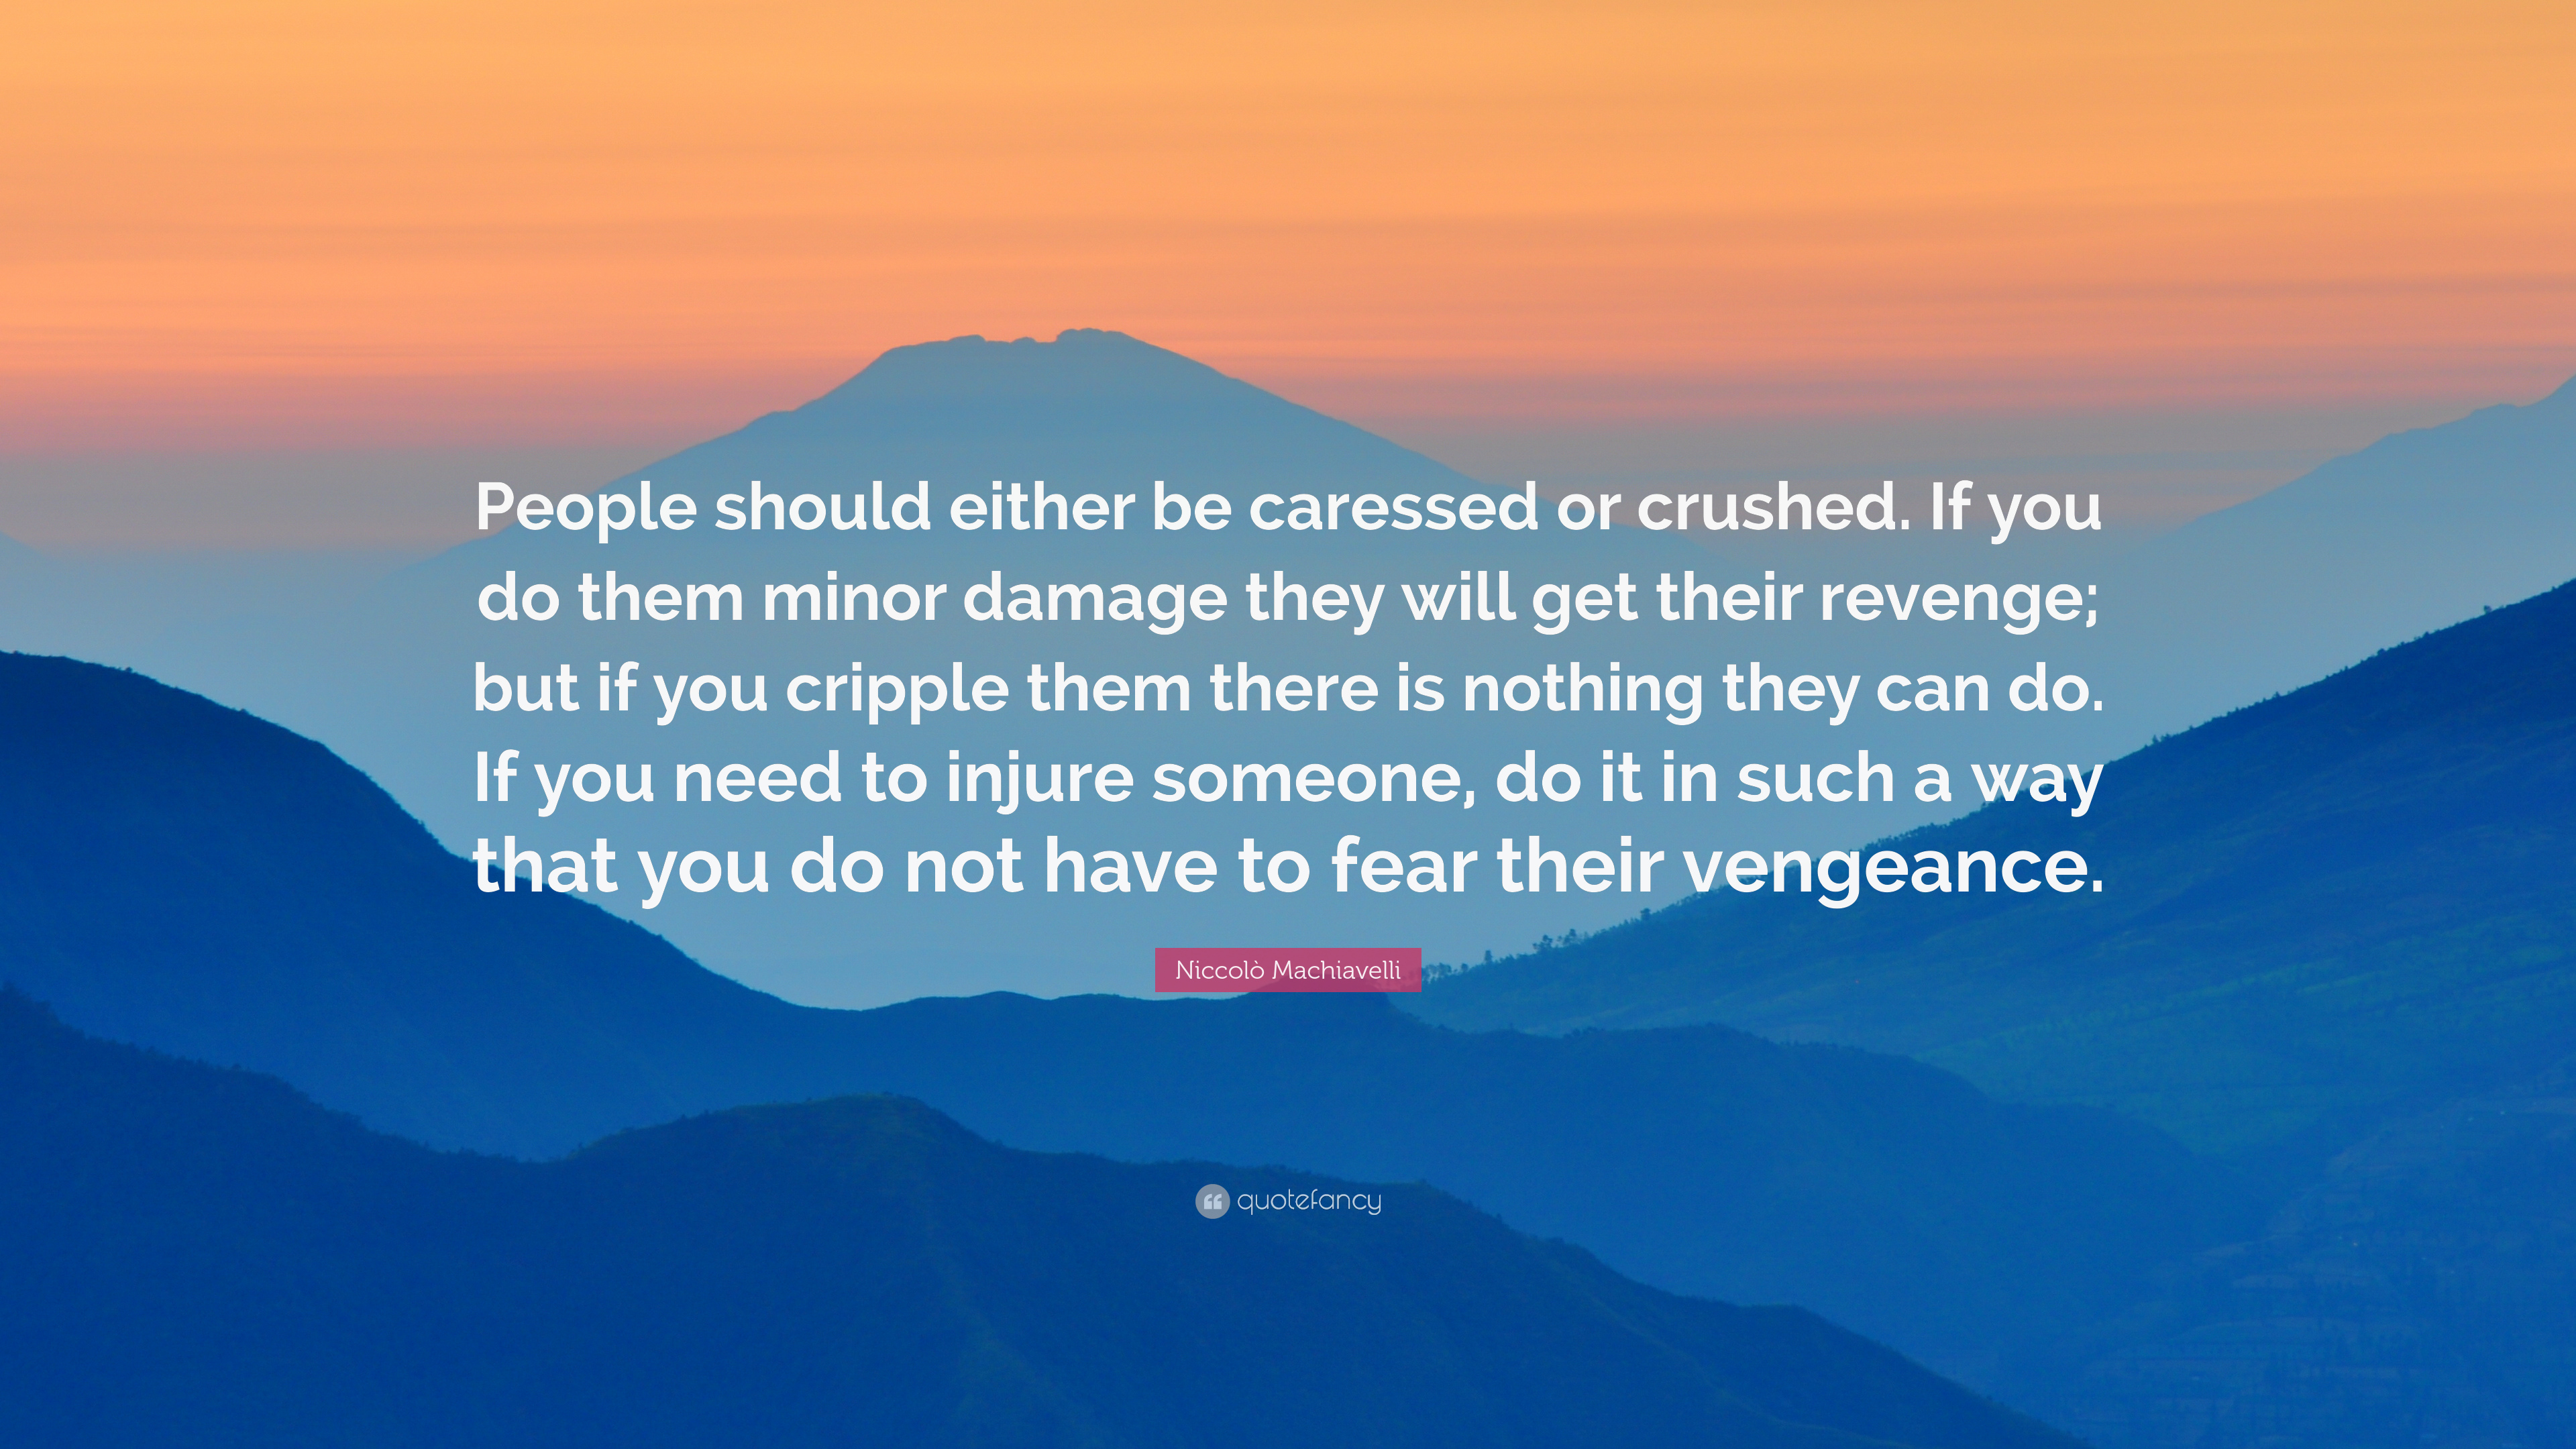 machiavelli caressed or crushed People should either be caressed or crushed if you do them minor damage they  will get their revenge but if you cripple them there is nothing they can do.